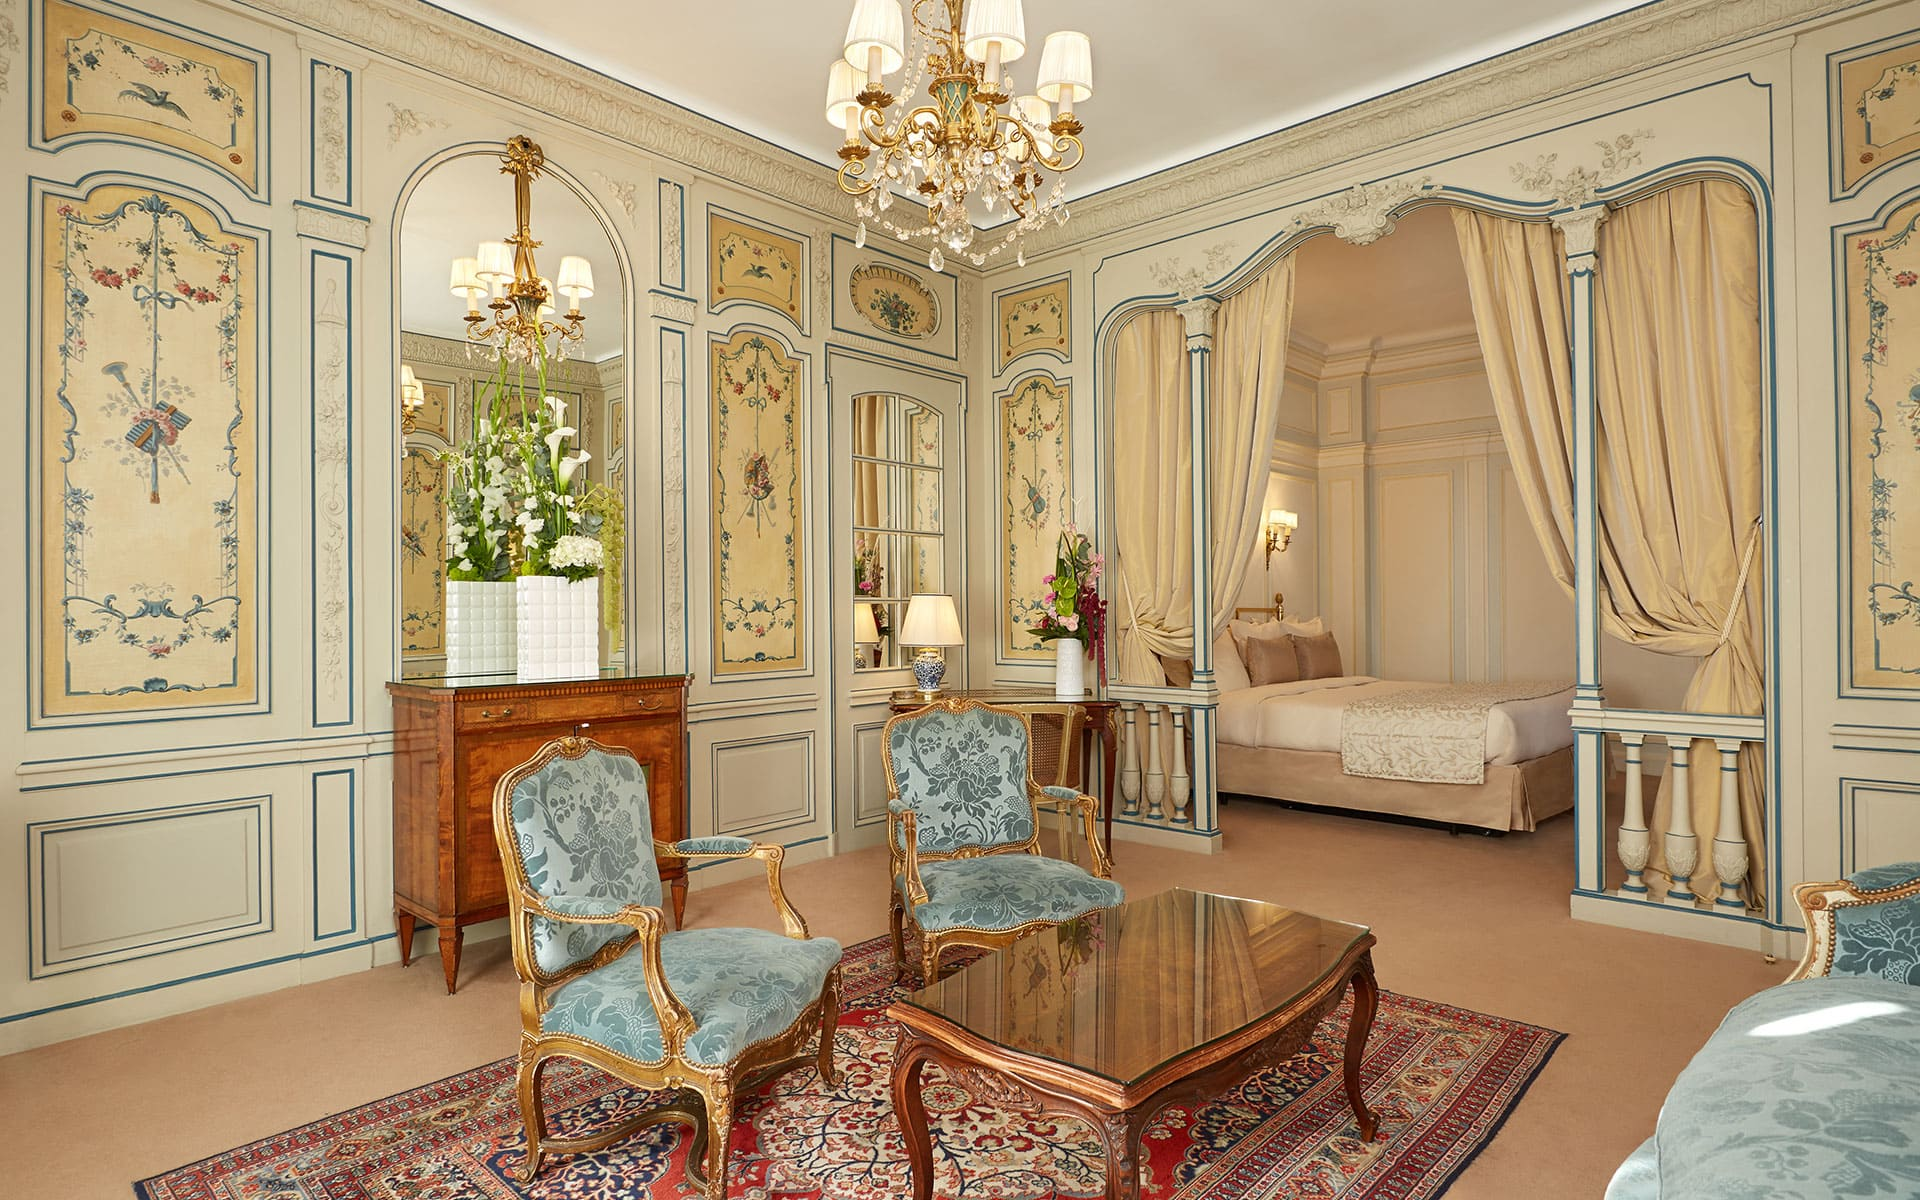 266/5-Suites/Suite-Junior-1 - -CHotel-Raphael-Paris.jpg